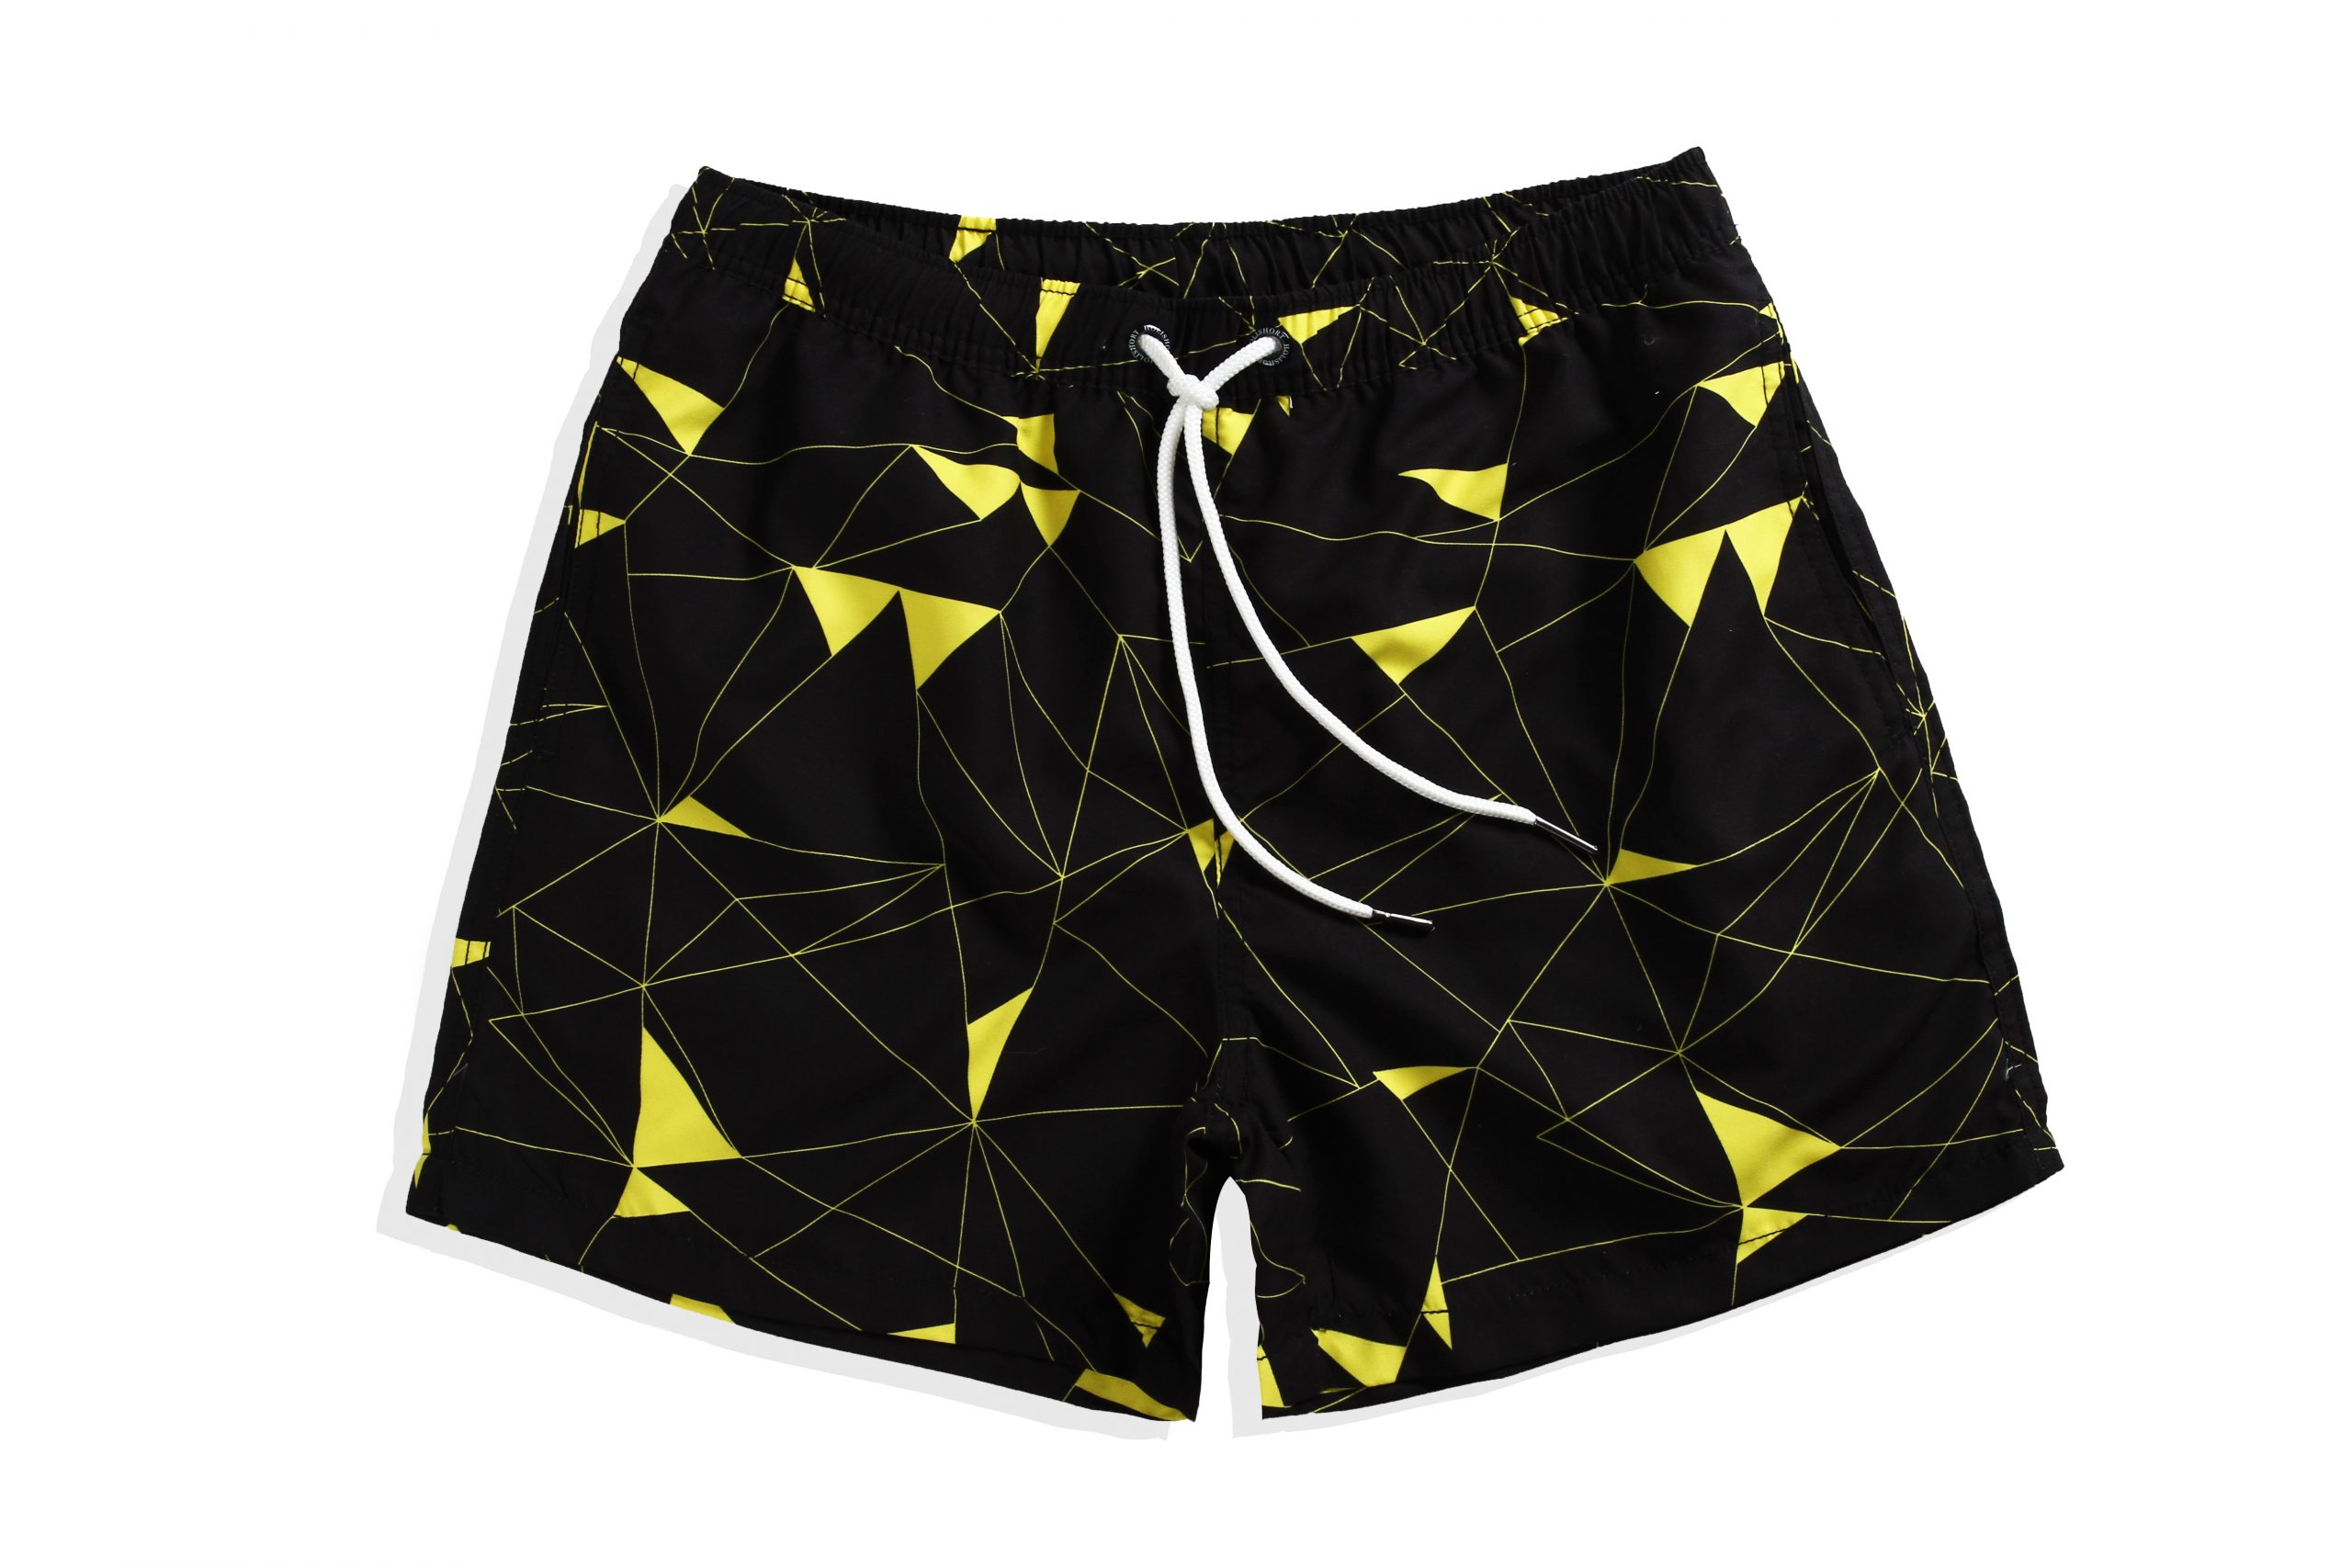 Black with yellow pattern men's trunks